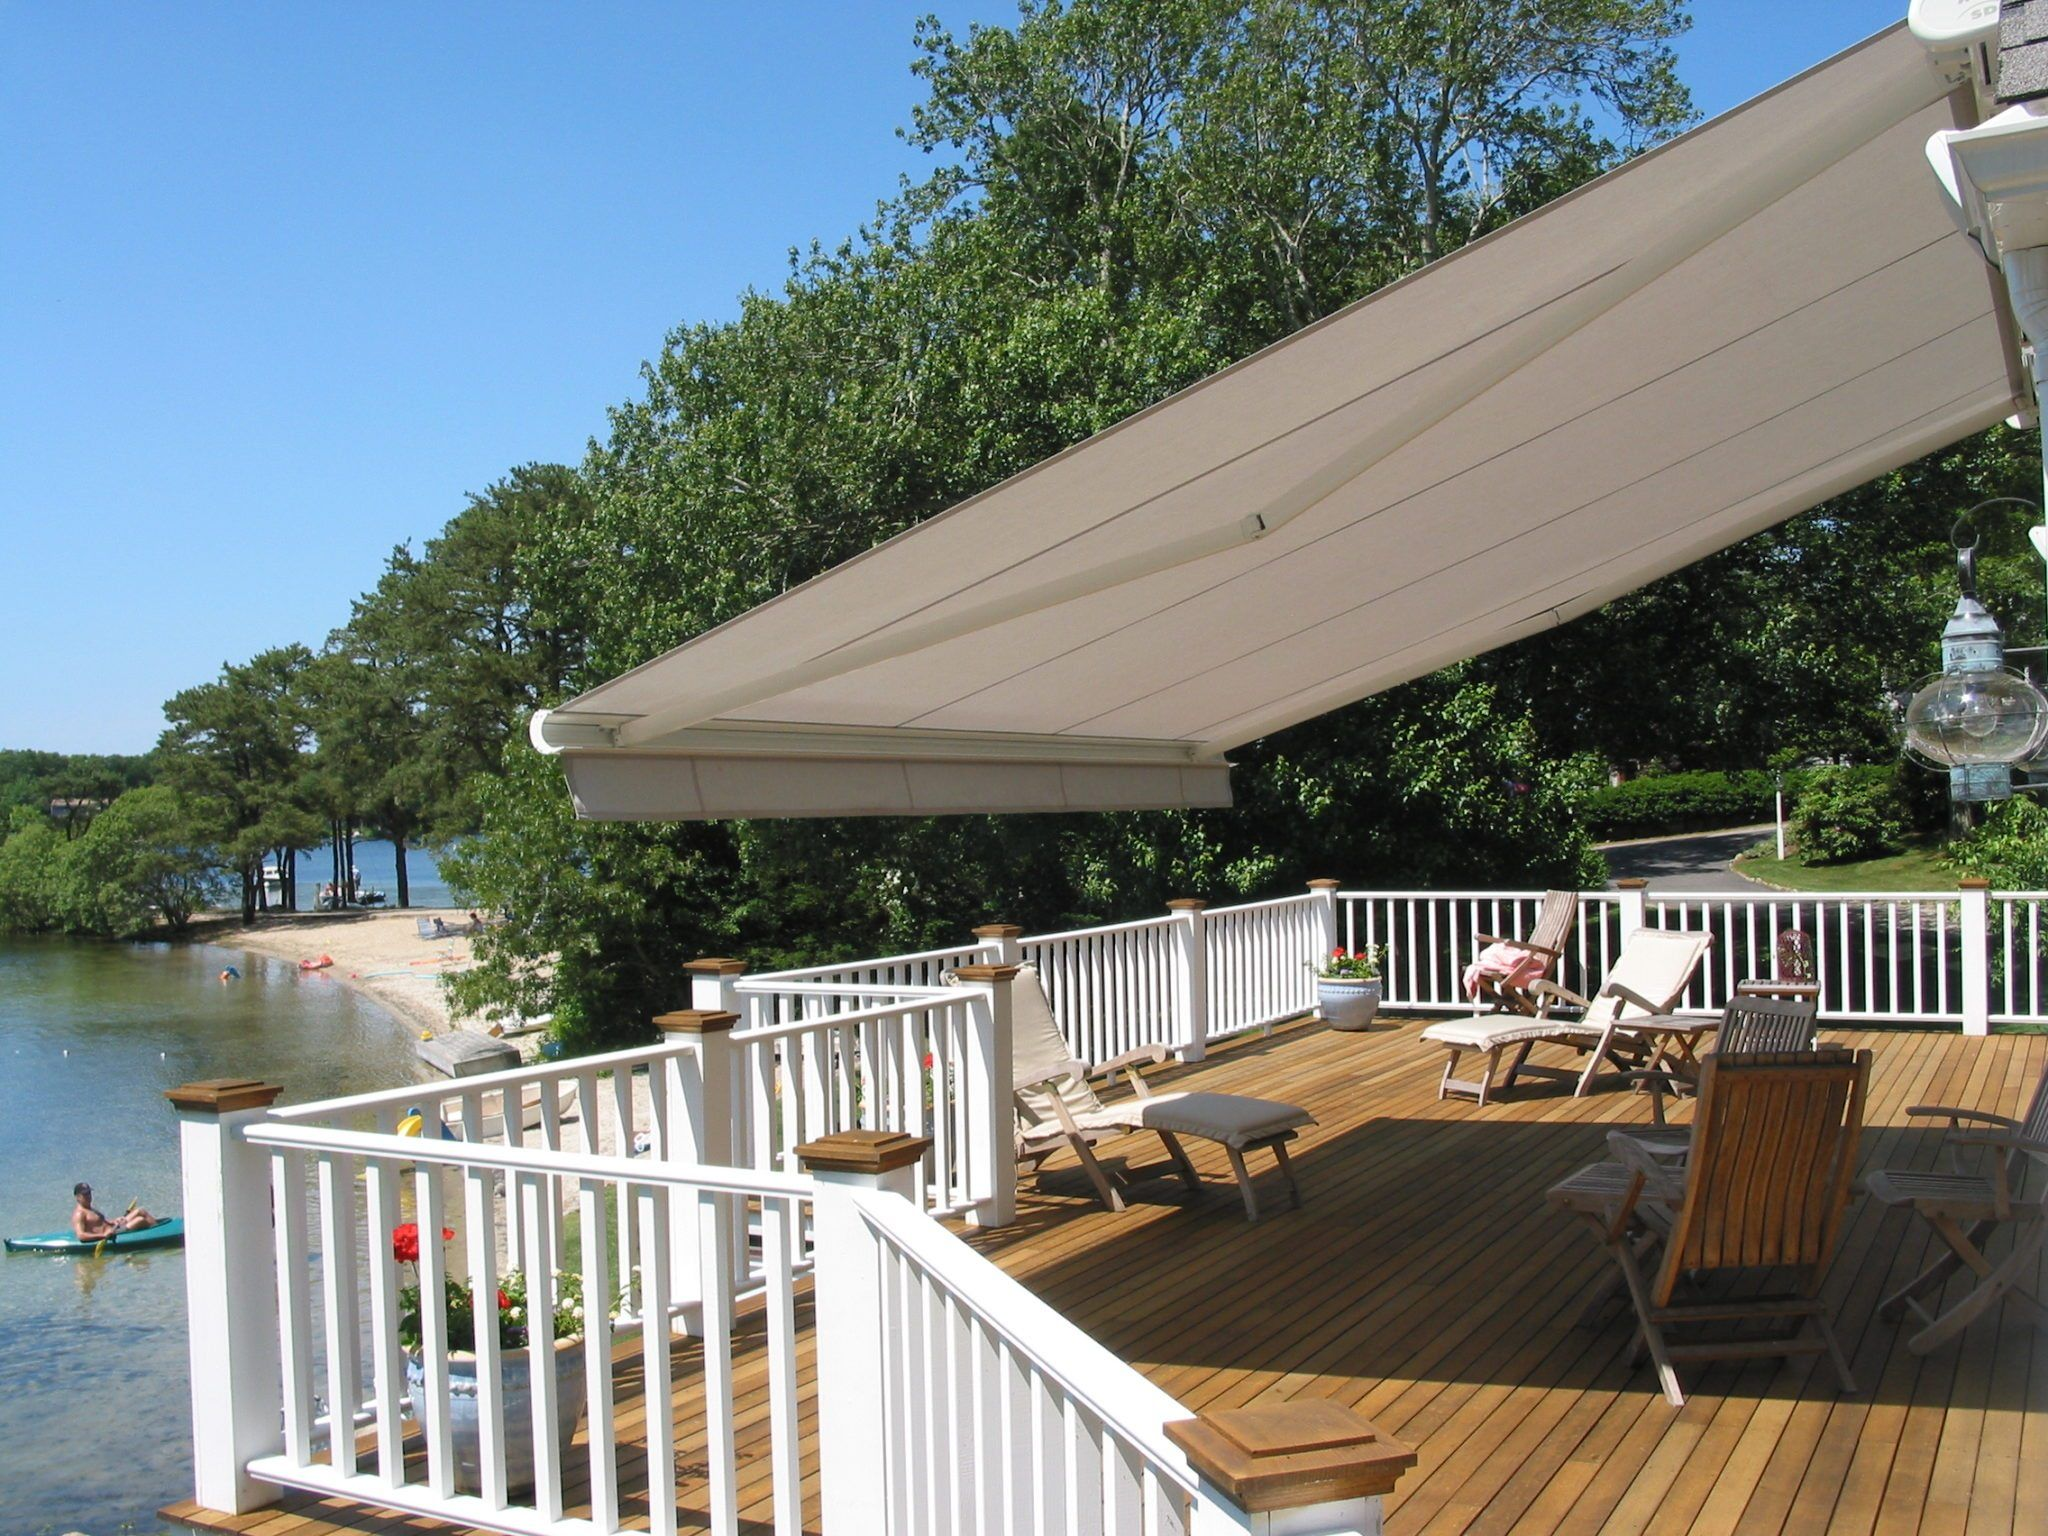 s lake long house gas the size u pinterest view restaurant cga awnings full search awning of for entrance pictures canopy side style windows a commercial island google